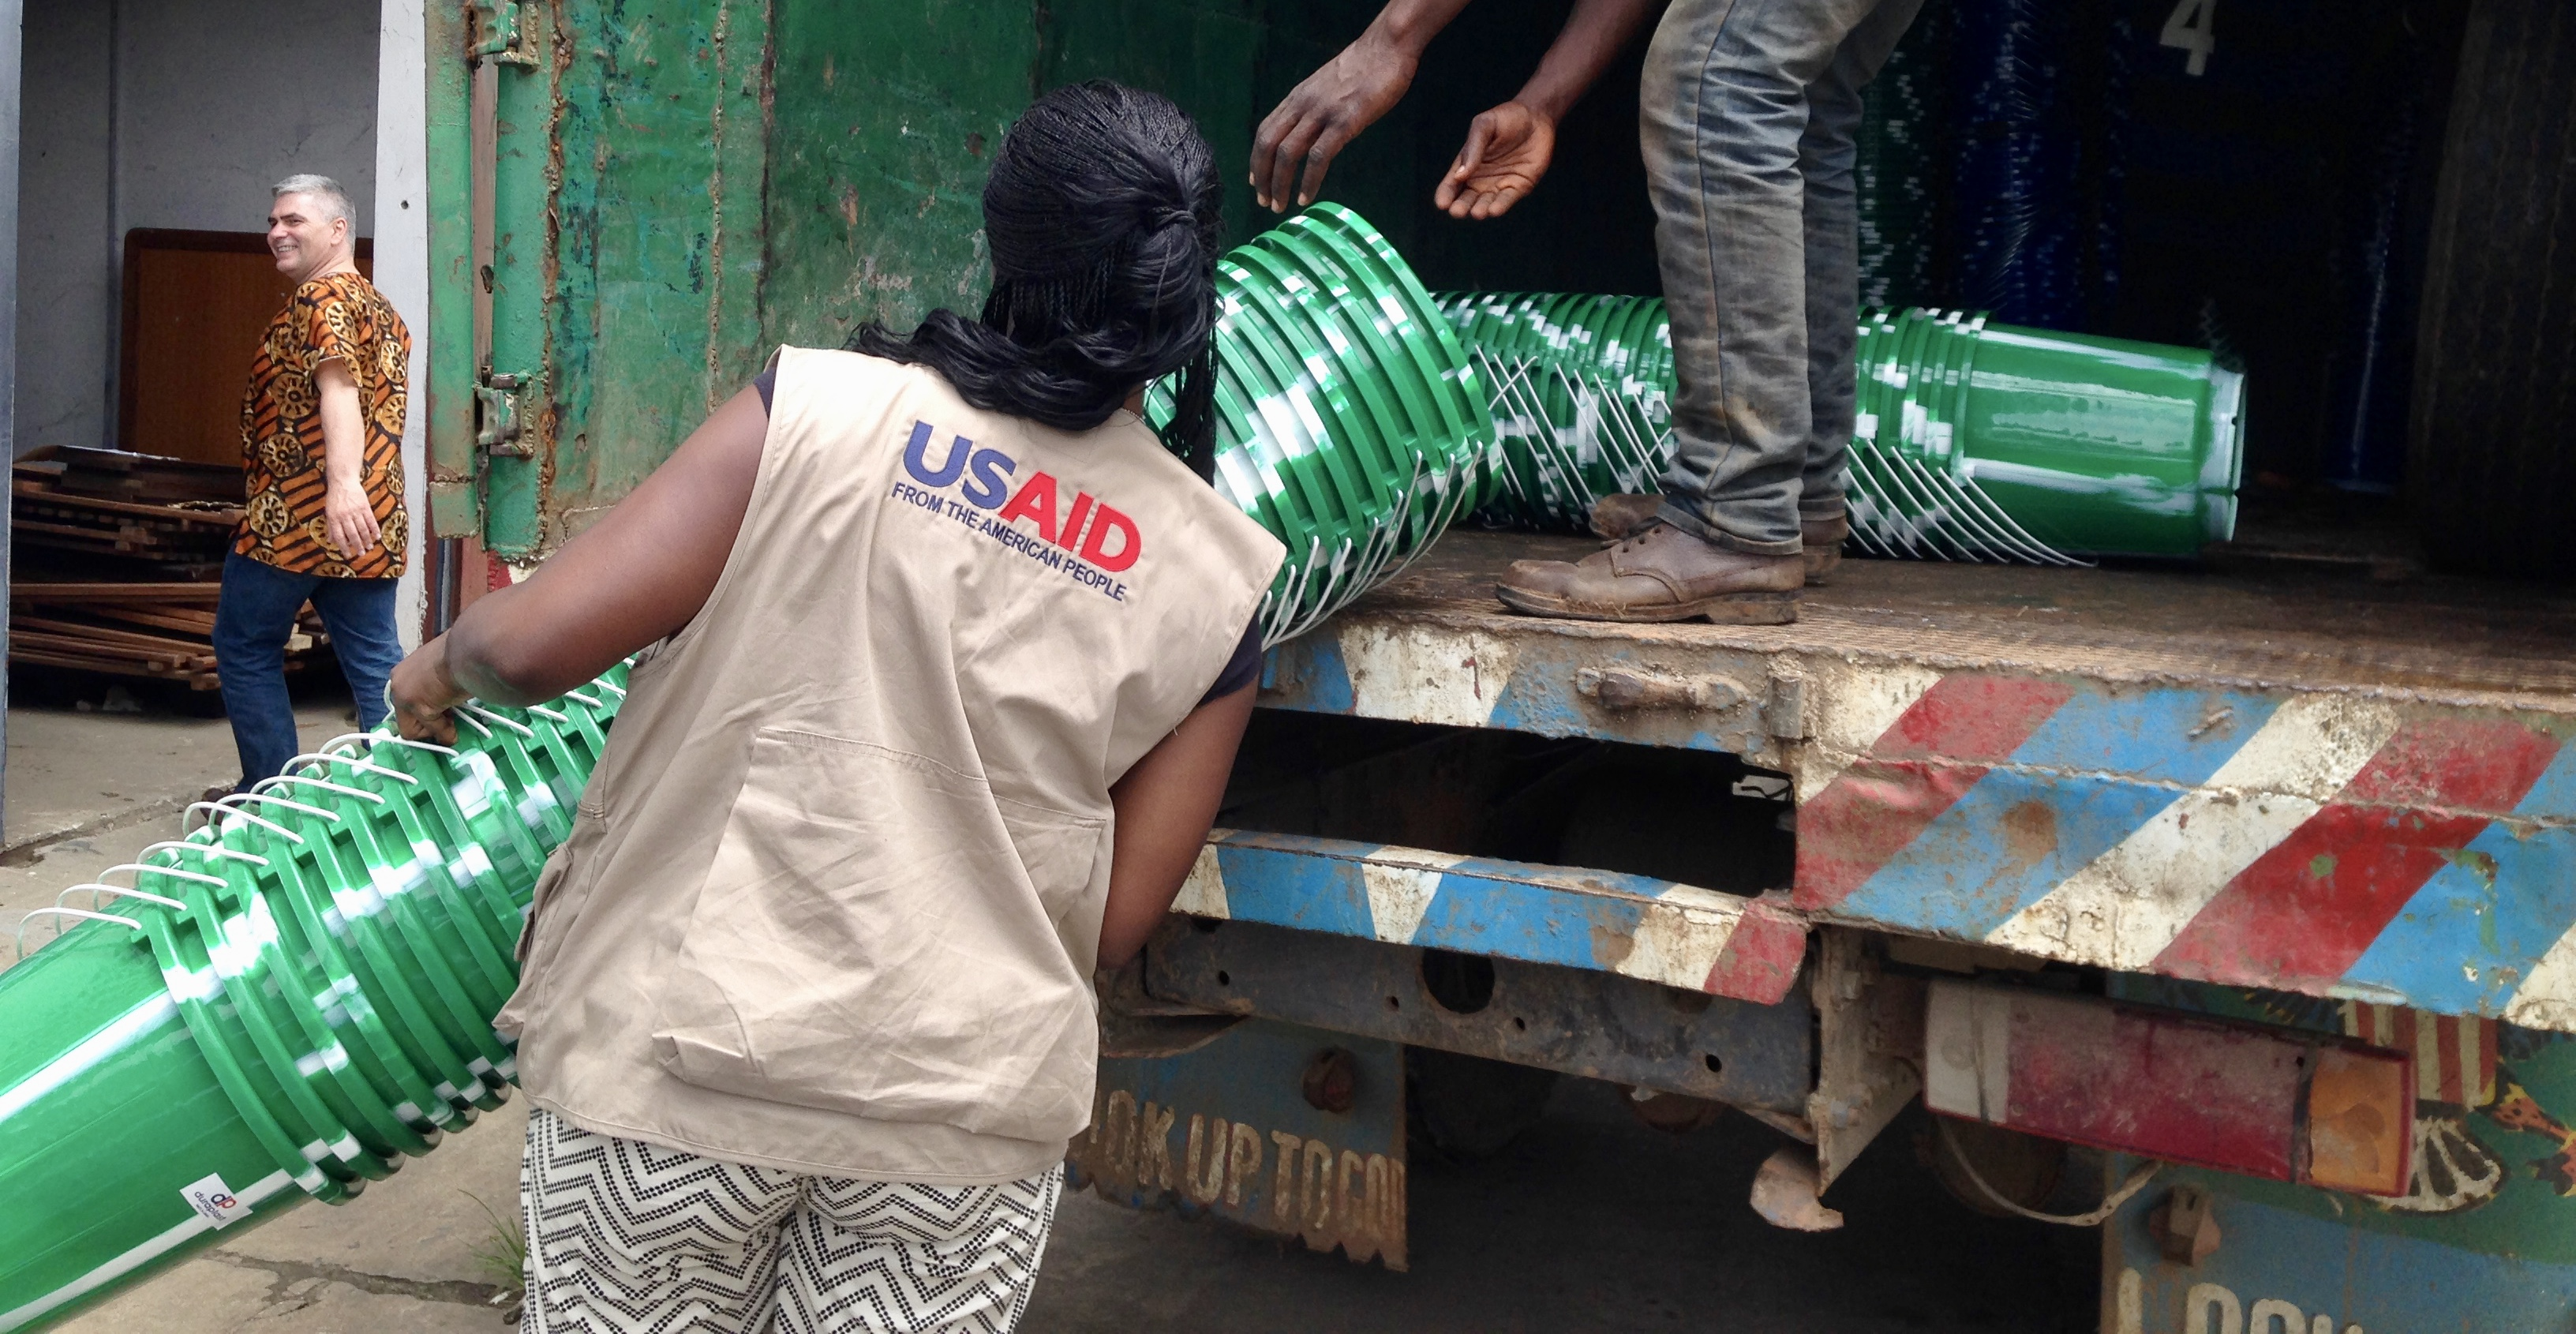 USAID deploys a Disaster Assistance Response Team (DART) to crisis-affected areas. Here, a DART procures hygiene items for Ebola response, Aug. 27, 2014. (Photo by Sarah McElroy, USAID Office of Foreign Disaster Assistance (OFDA))